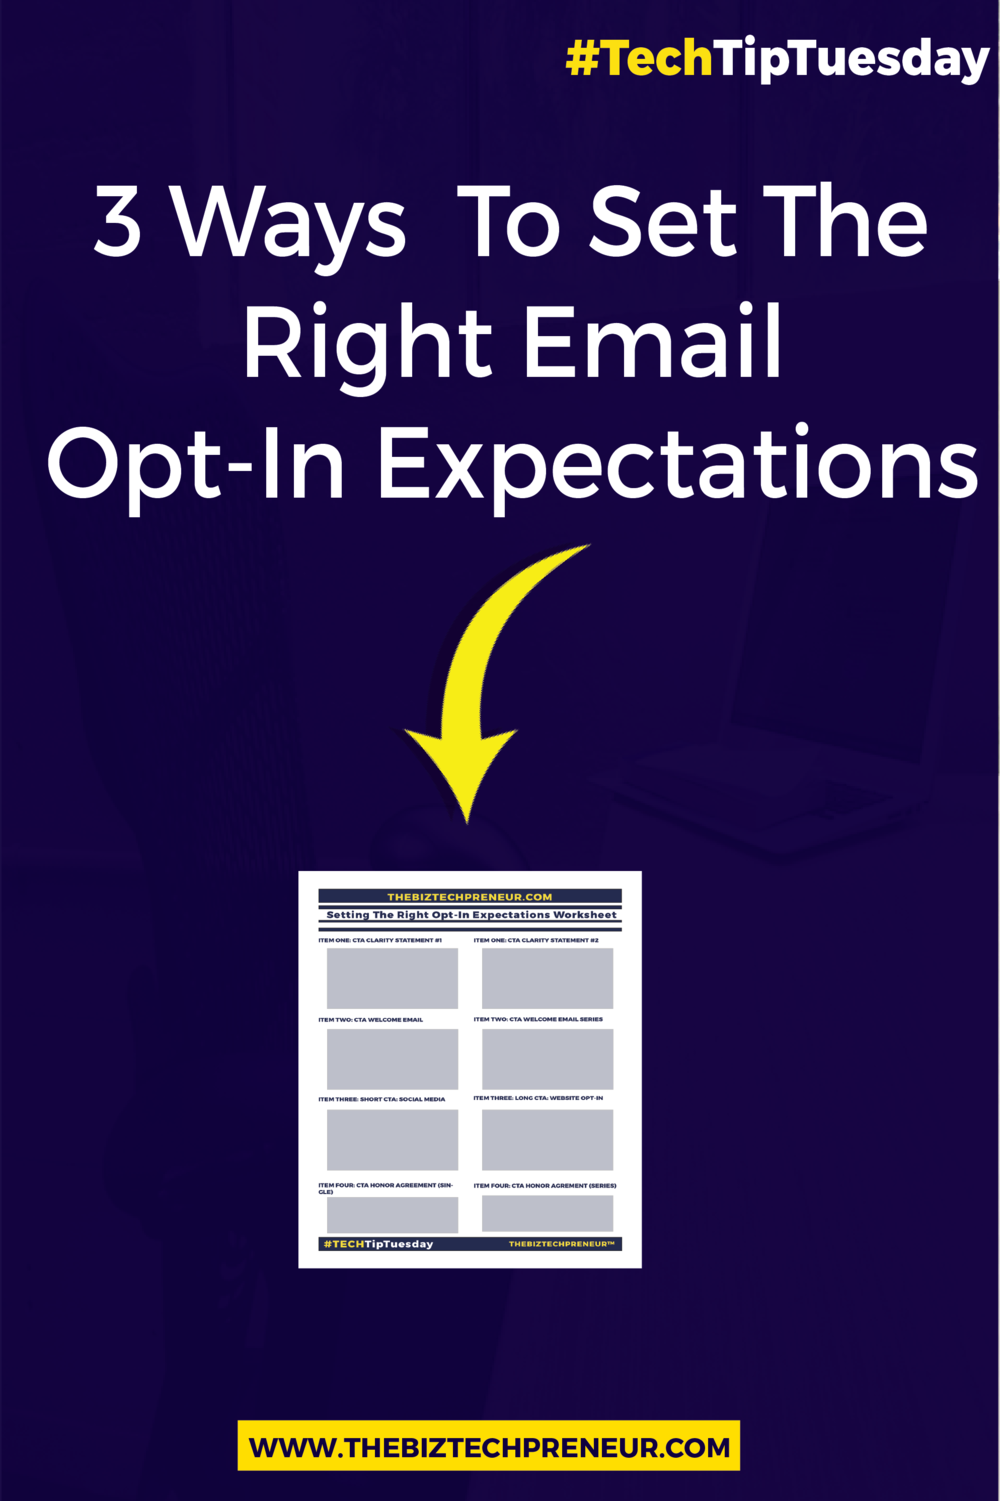 3 Ways To Set The Right Opt-In Expectations: cheers to new subscribers!